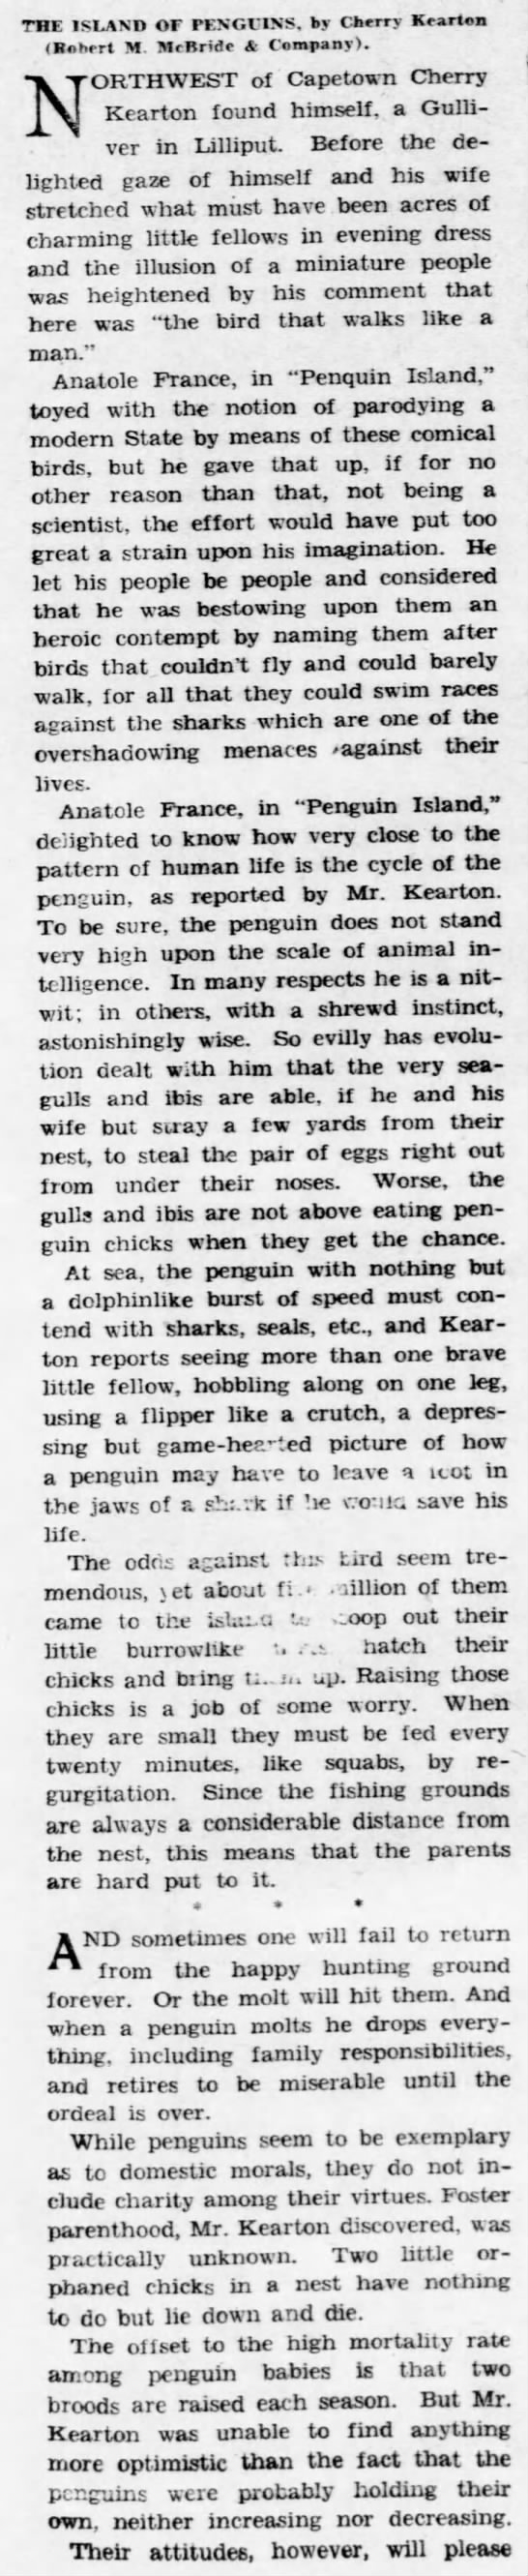 k1a Old Print Article: Cherry Kearton Photographs Penguin Island (1931)